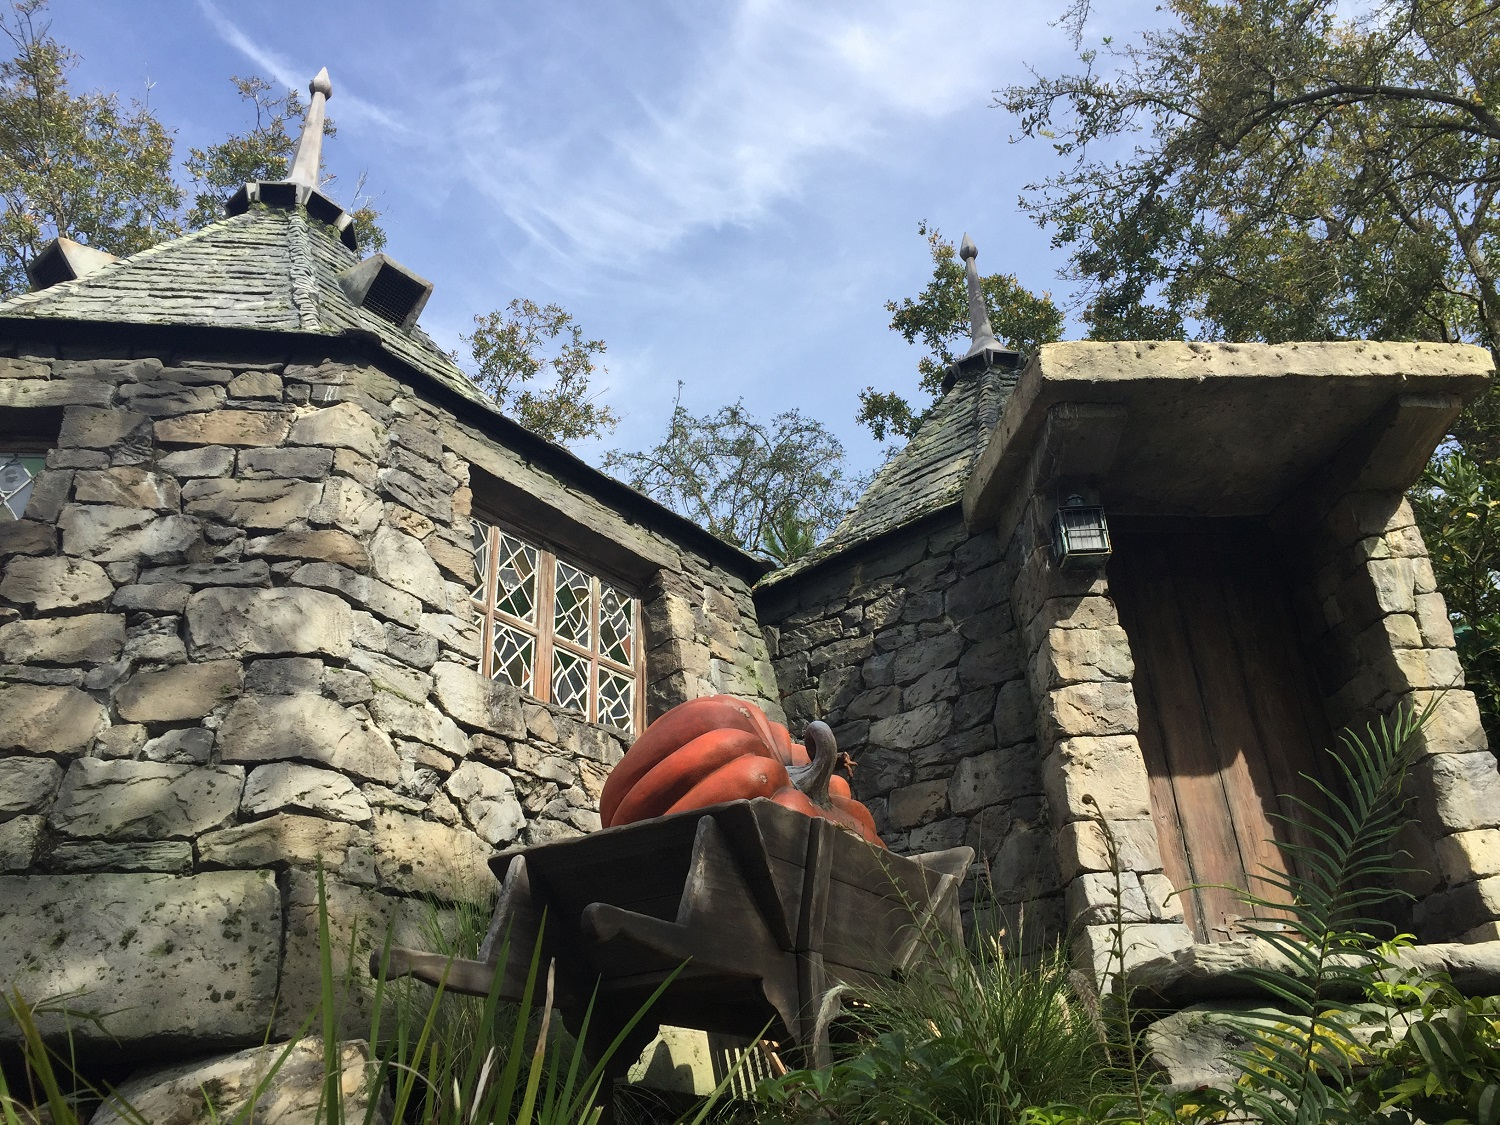 Hagrid's Hut next to the Flight of the Hippogriff  queue.